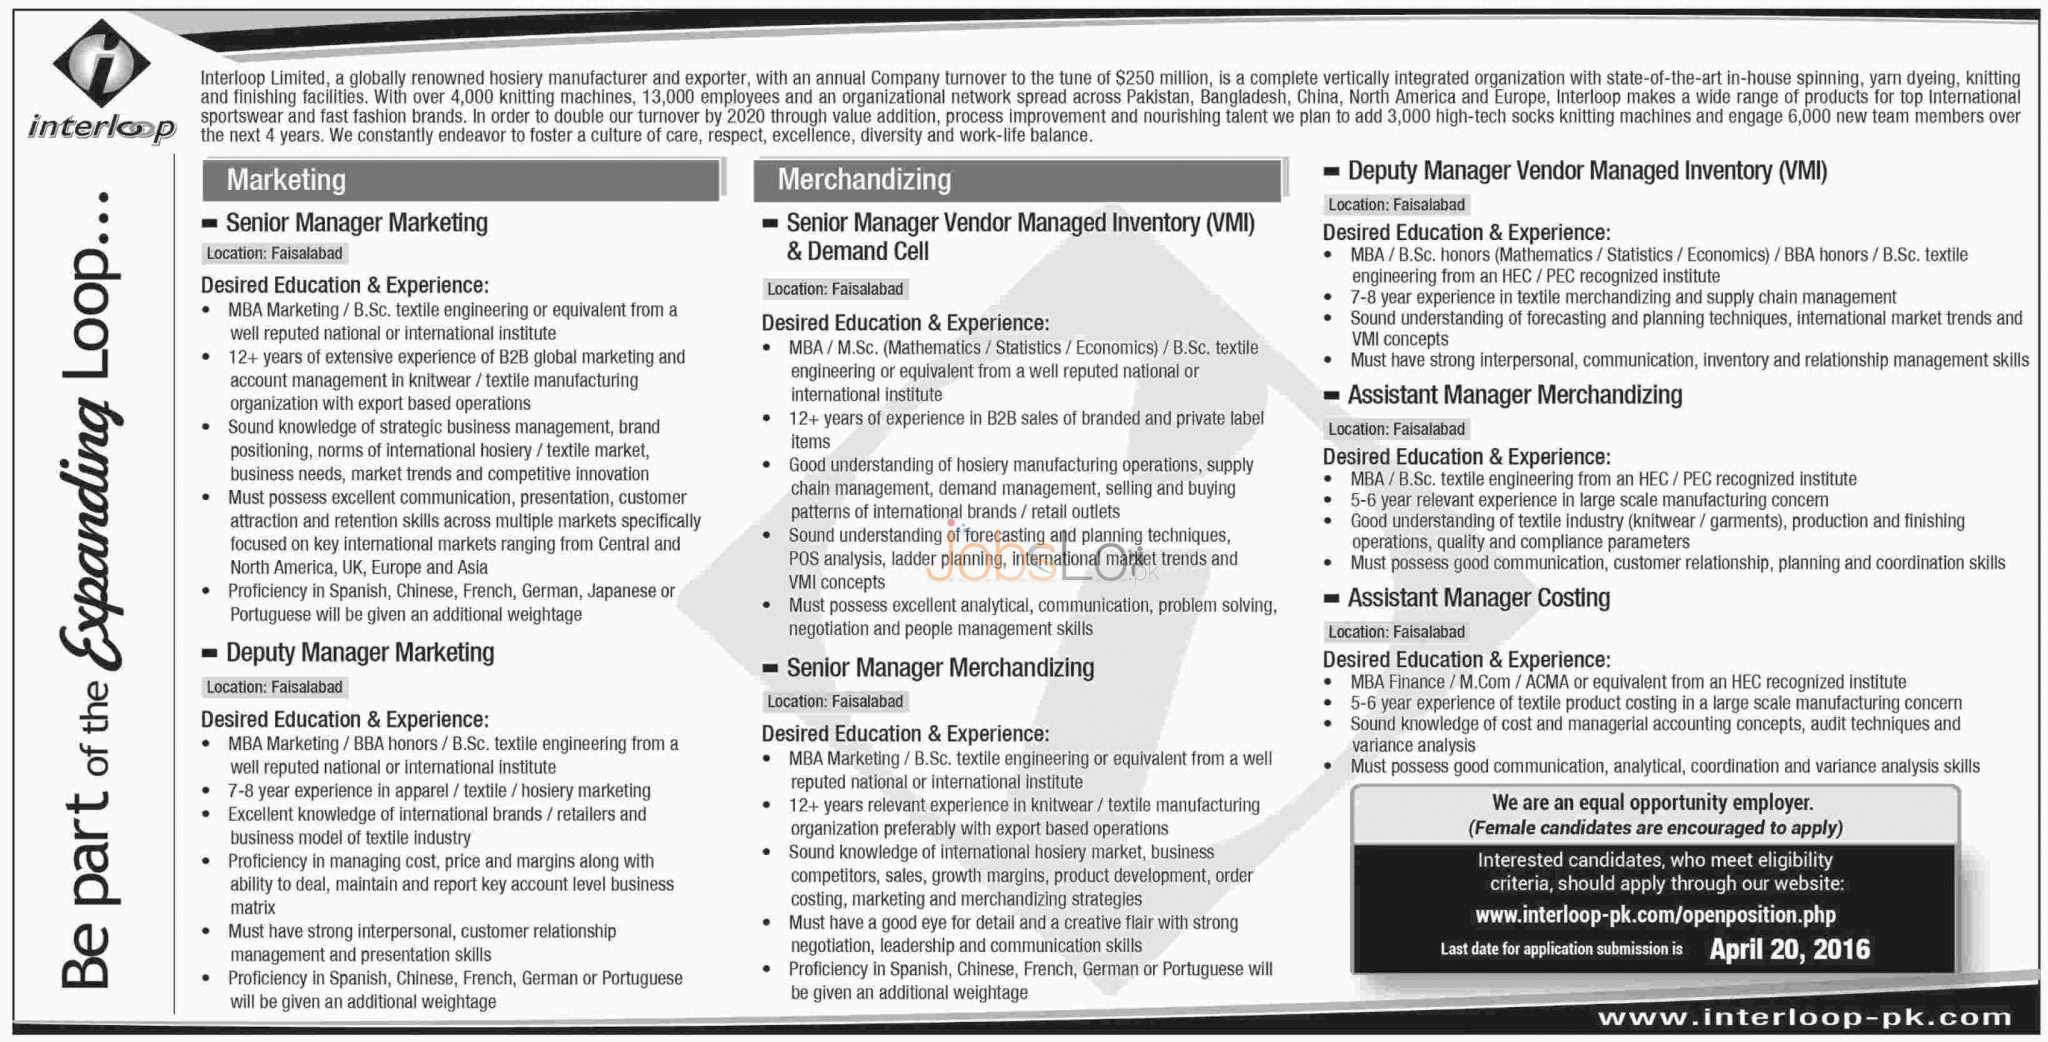 Interloop Private Ltd Company Jobs